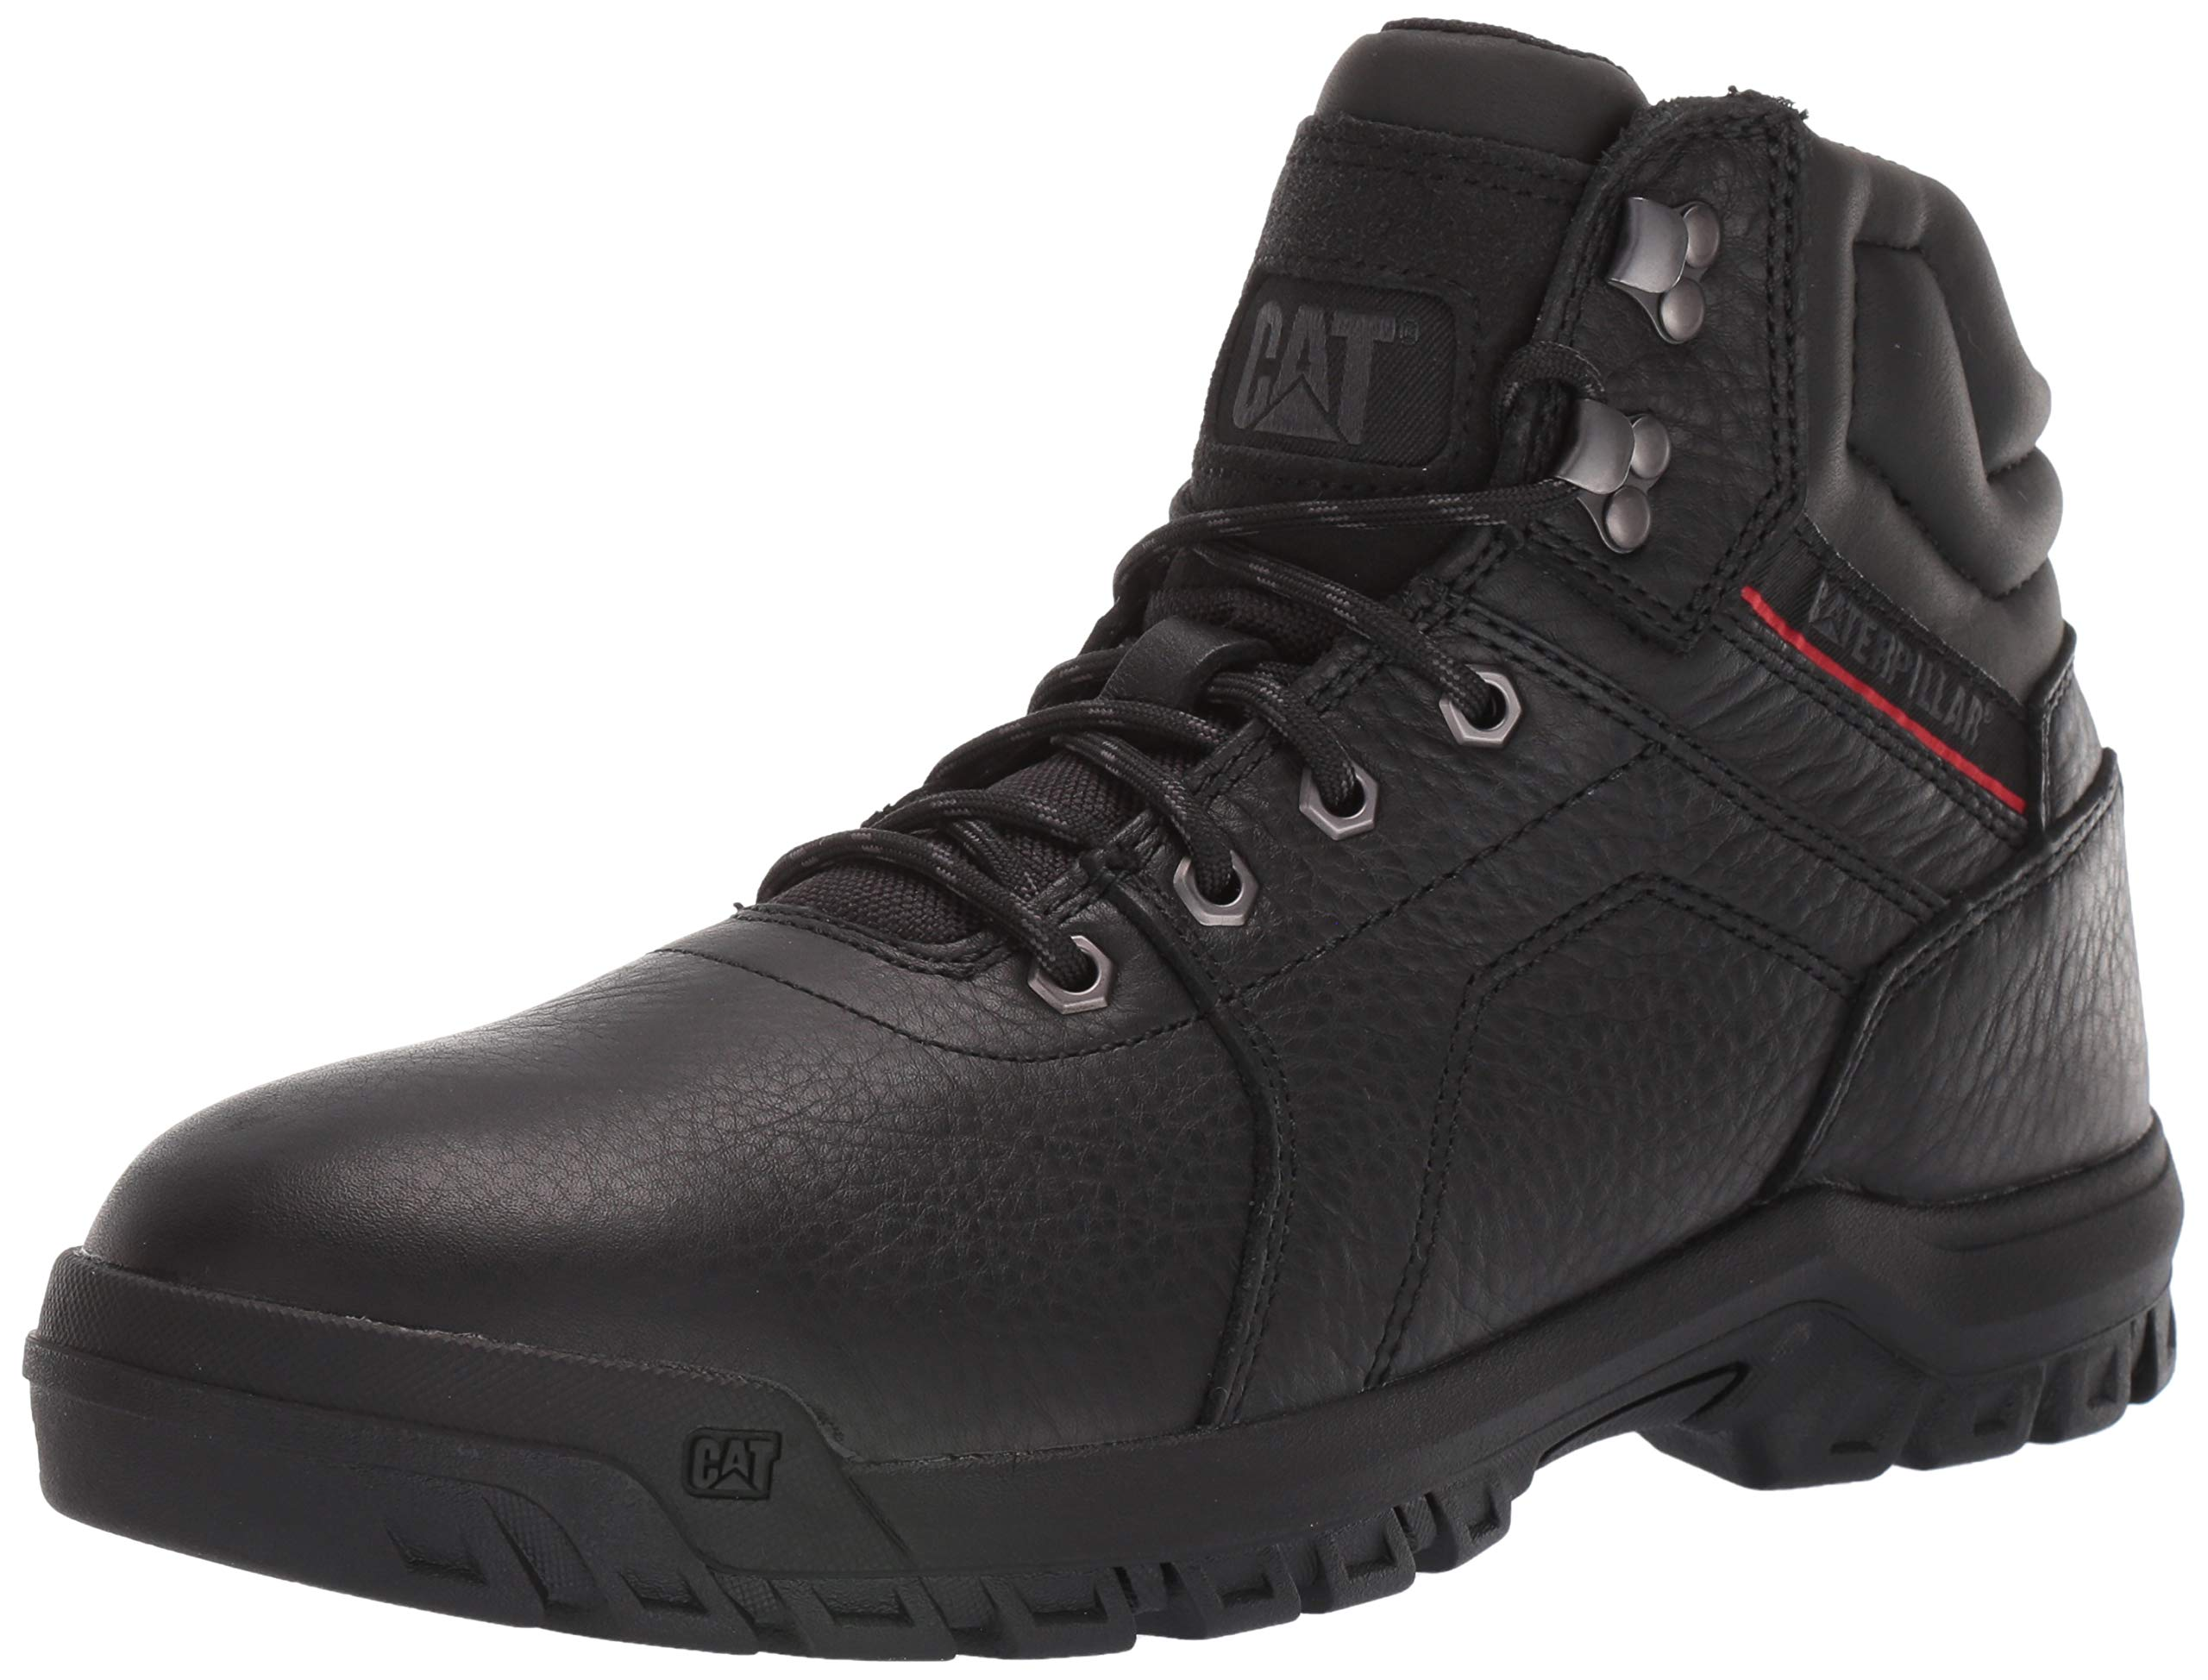 Caterpillar Men's Axel Construction Boot